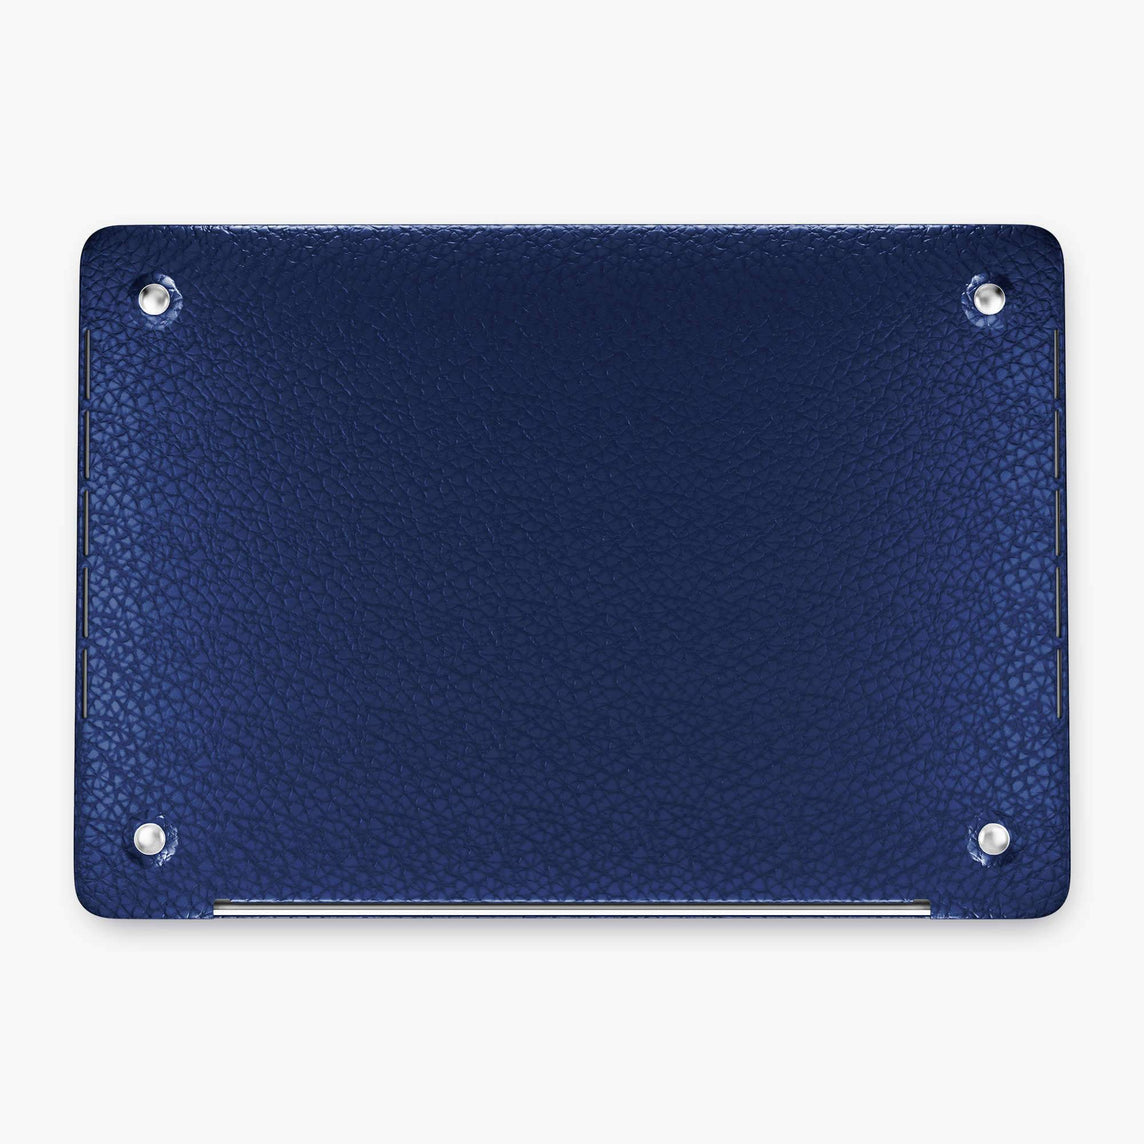 Alligator Macbook Case Apple Mac Book 15'' Pro | Navy Blue - Yellow Gold